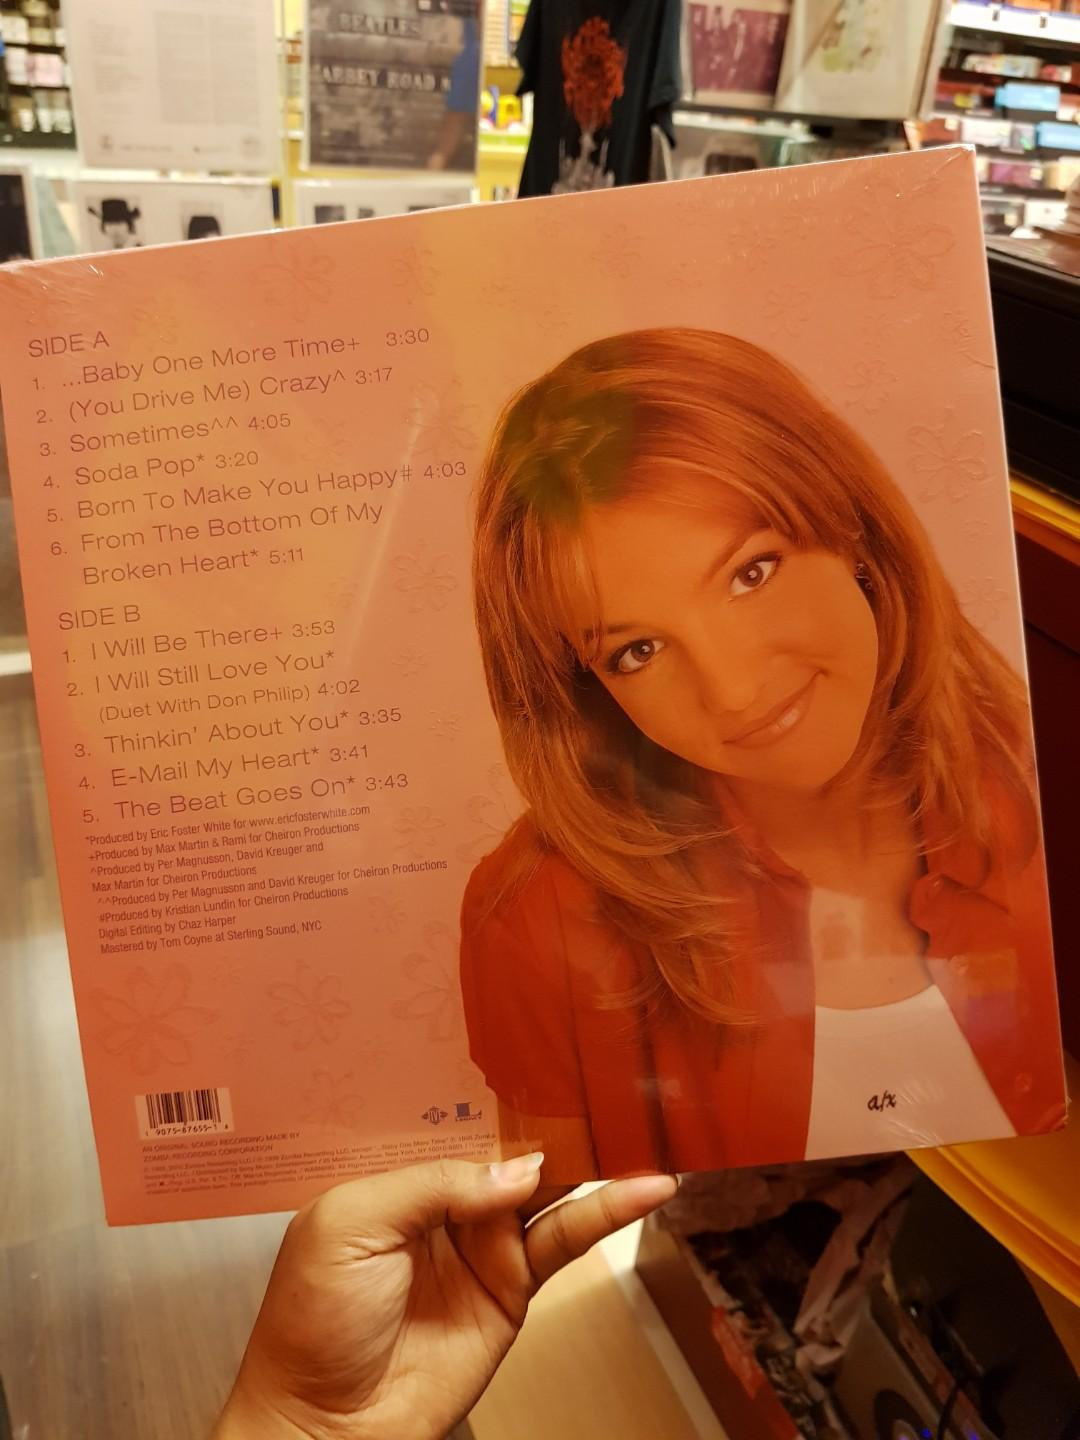 Britney Spears - Baby One More Time LP